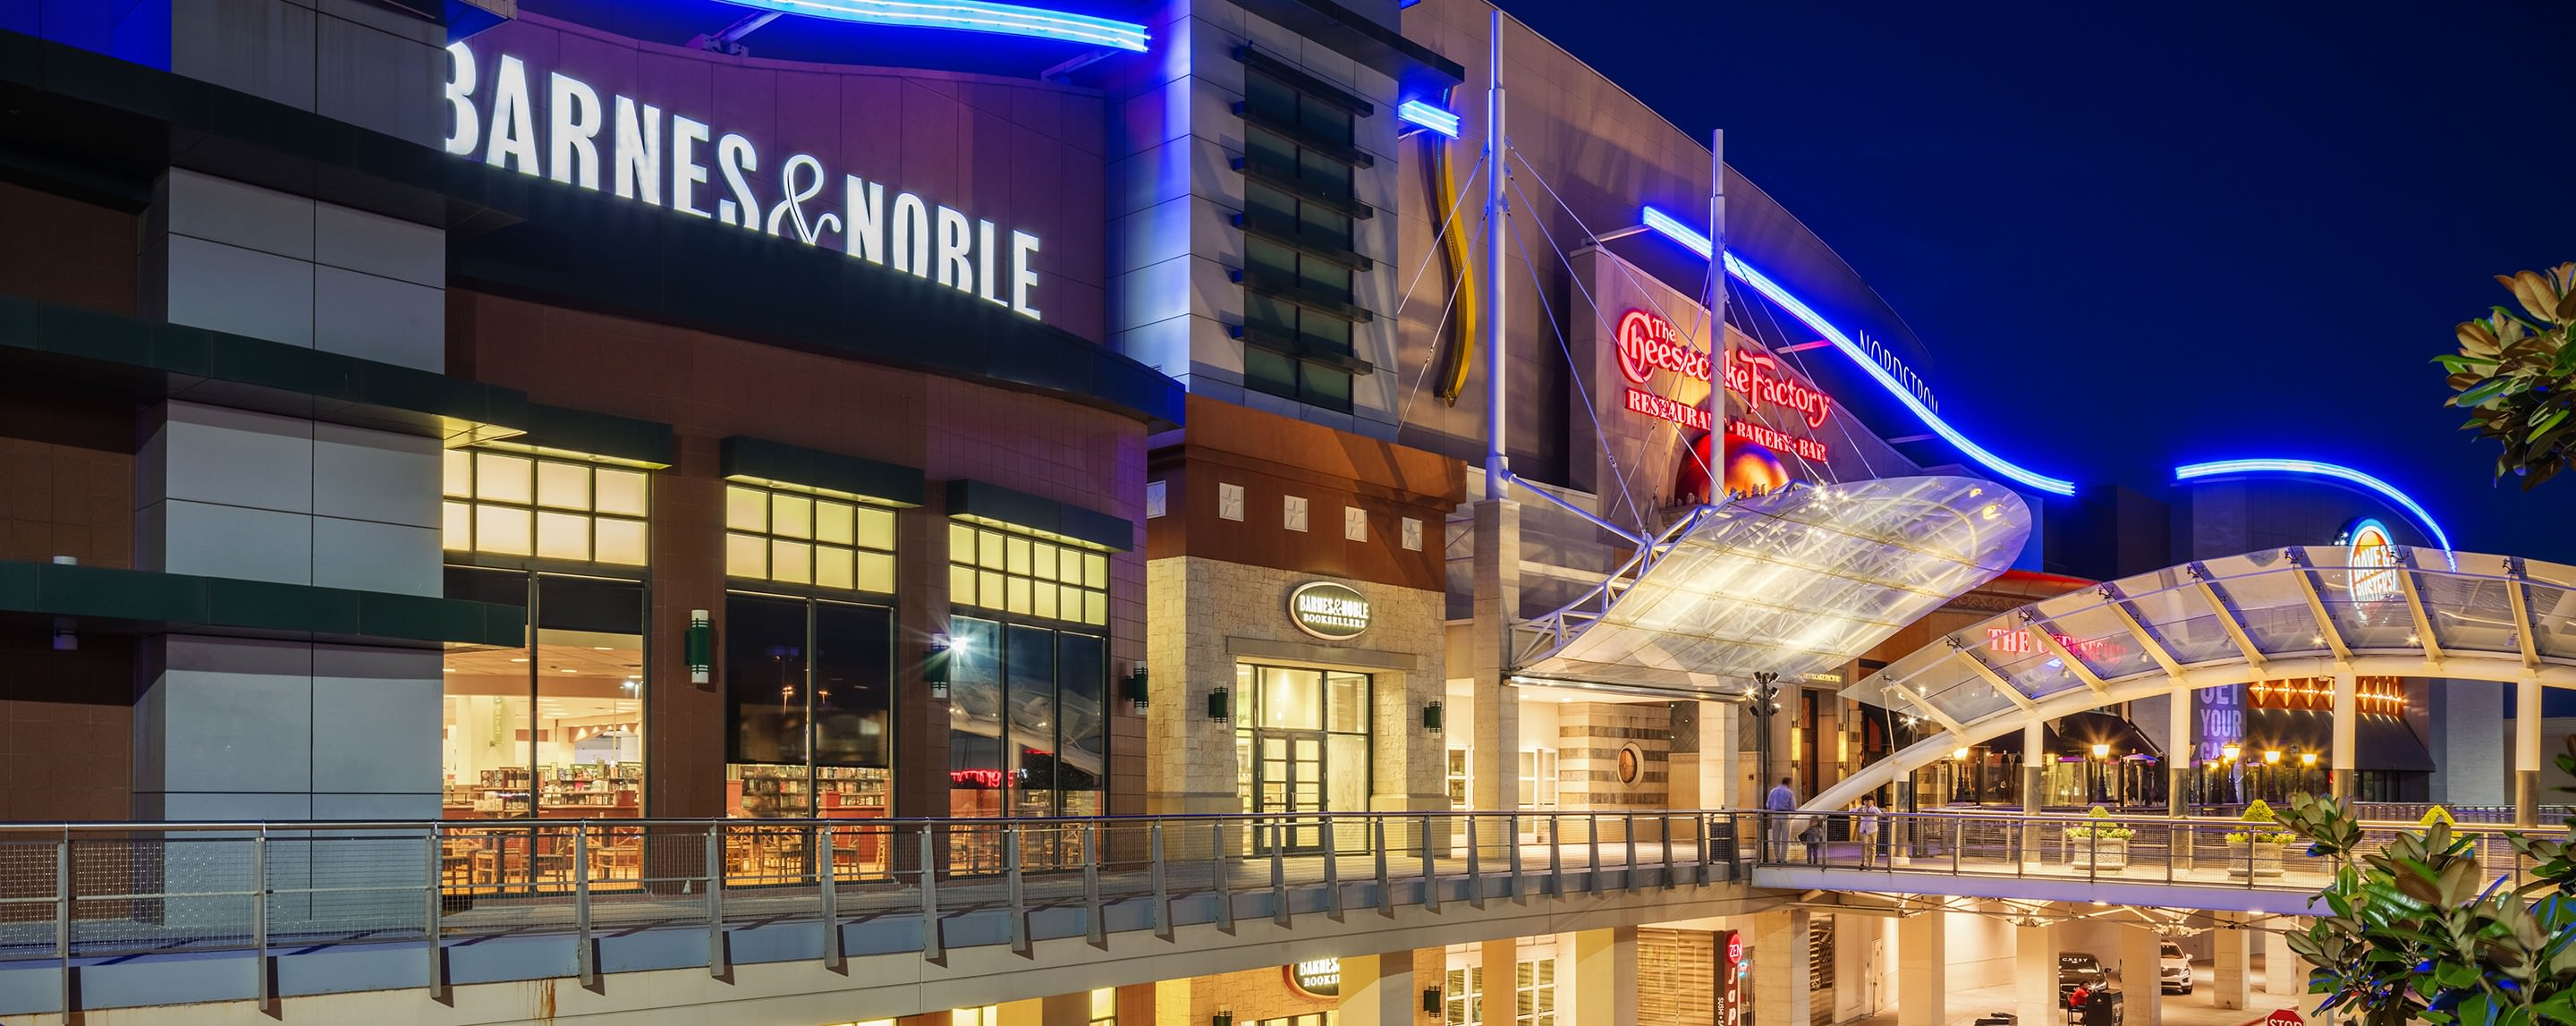 At dusk, stores such as Barnes & Noble and The Cheesecake Factory are alight at Stonebriar Centre.